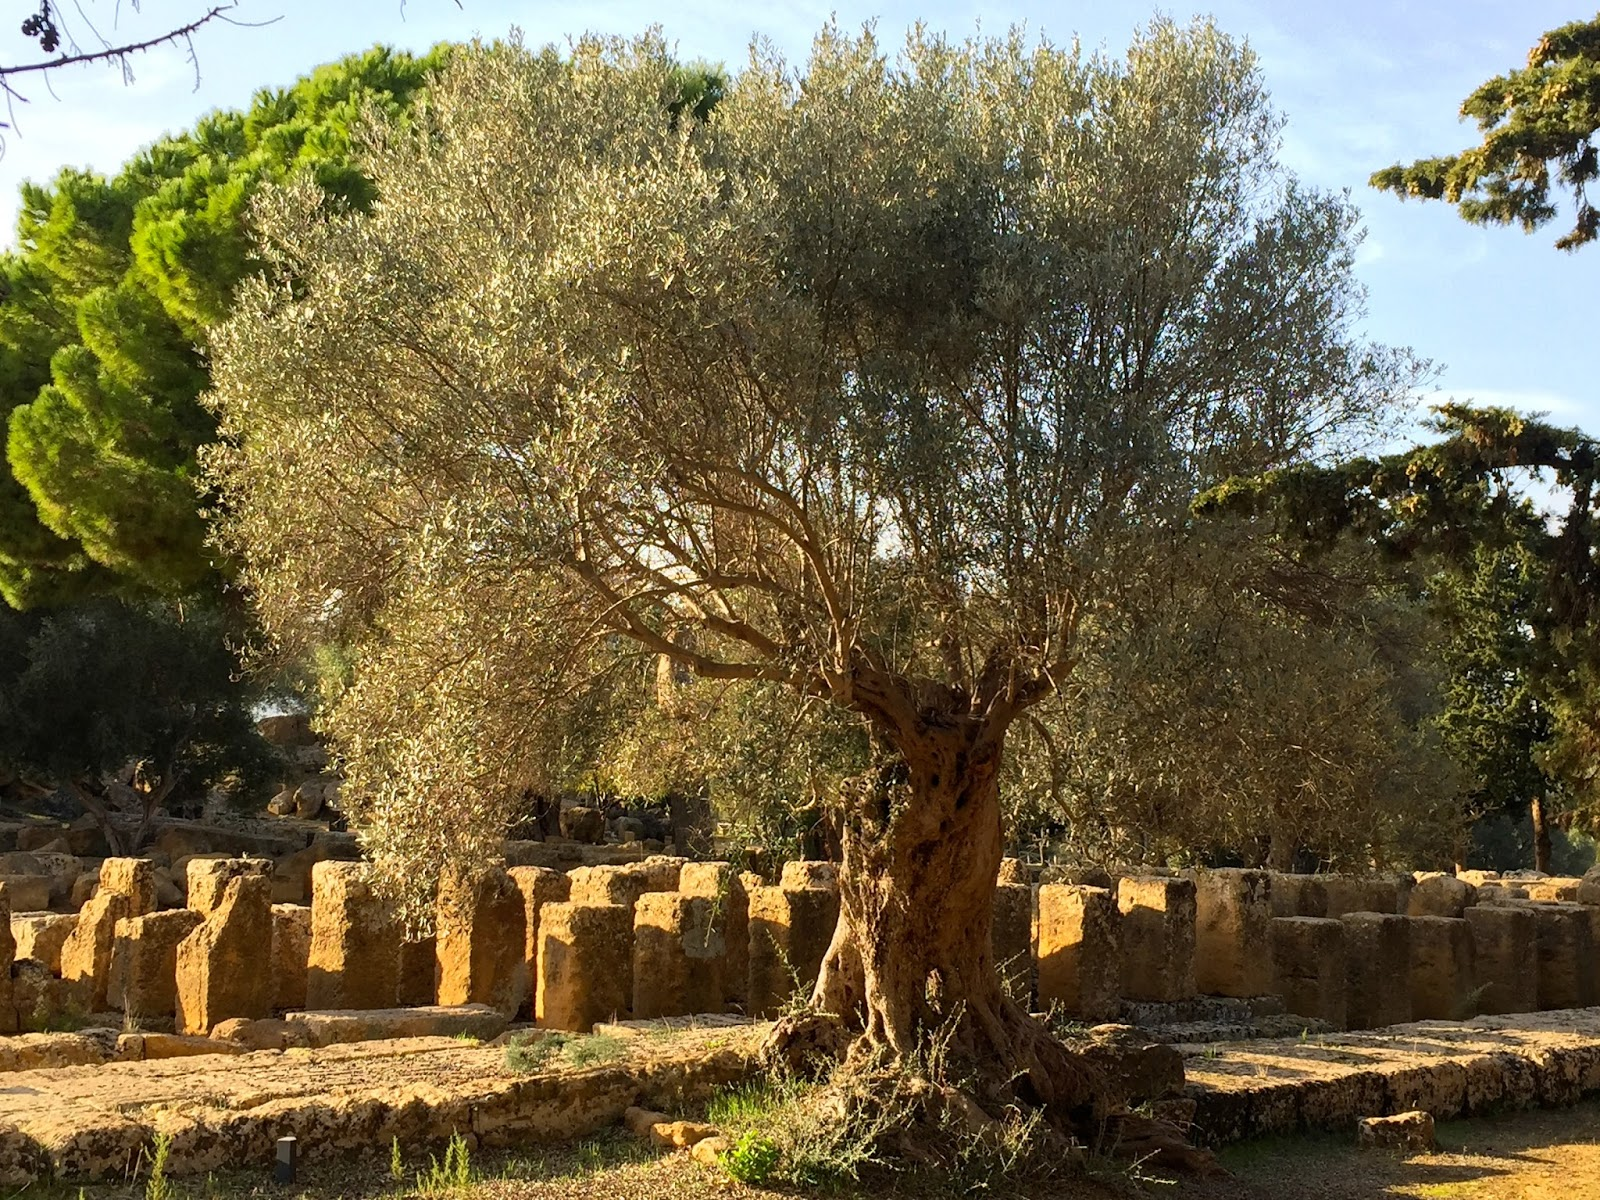 Magical moments: The Valley of the Temples, Agrigento | spaswinefood